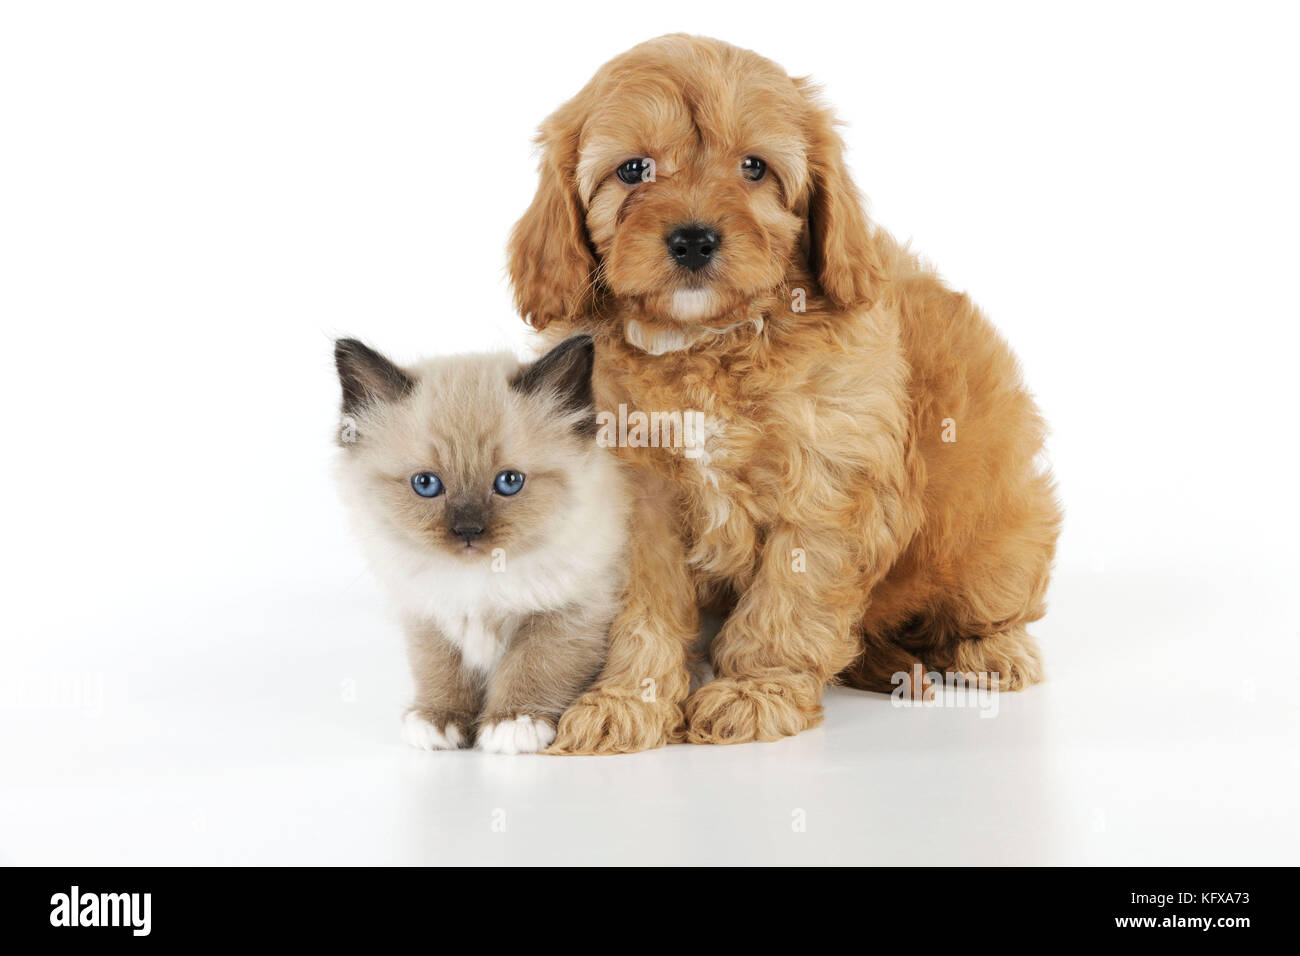 DOG. Cockerpoo puppy (Poodle X Cocker Spaniel 7wks old) with a kitten Stock Photo